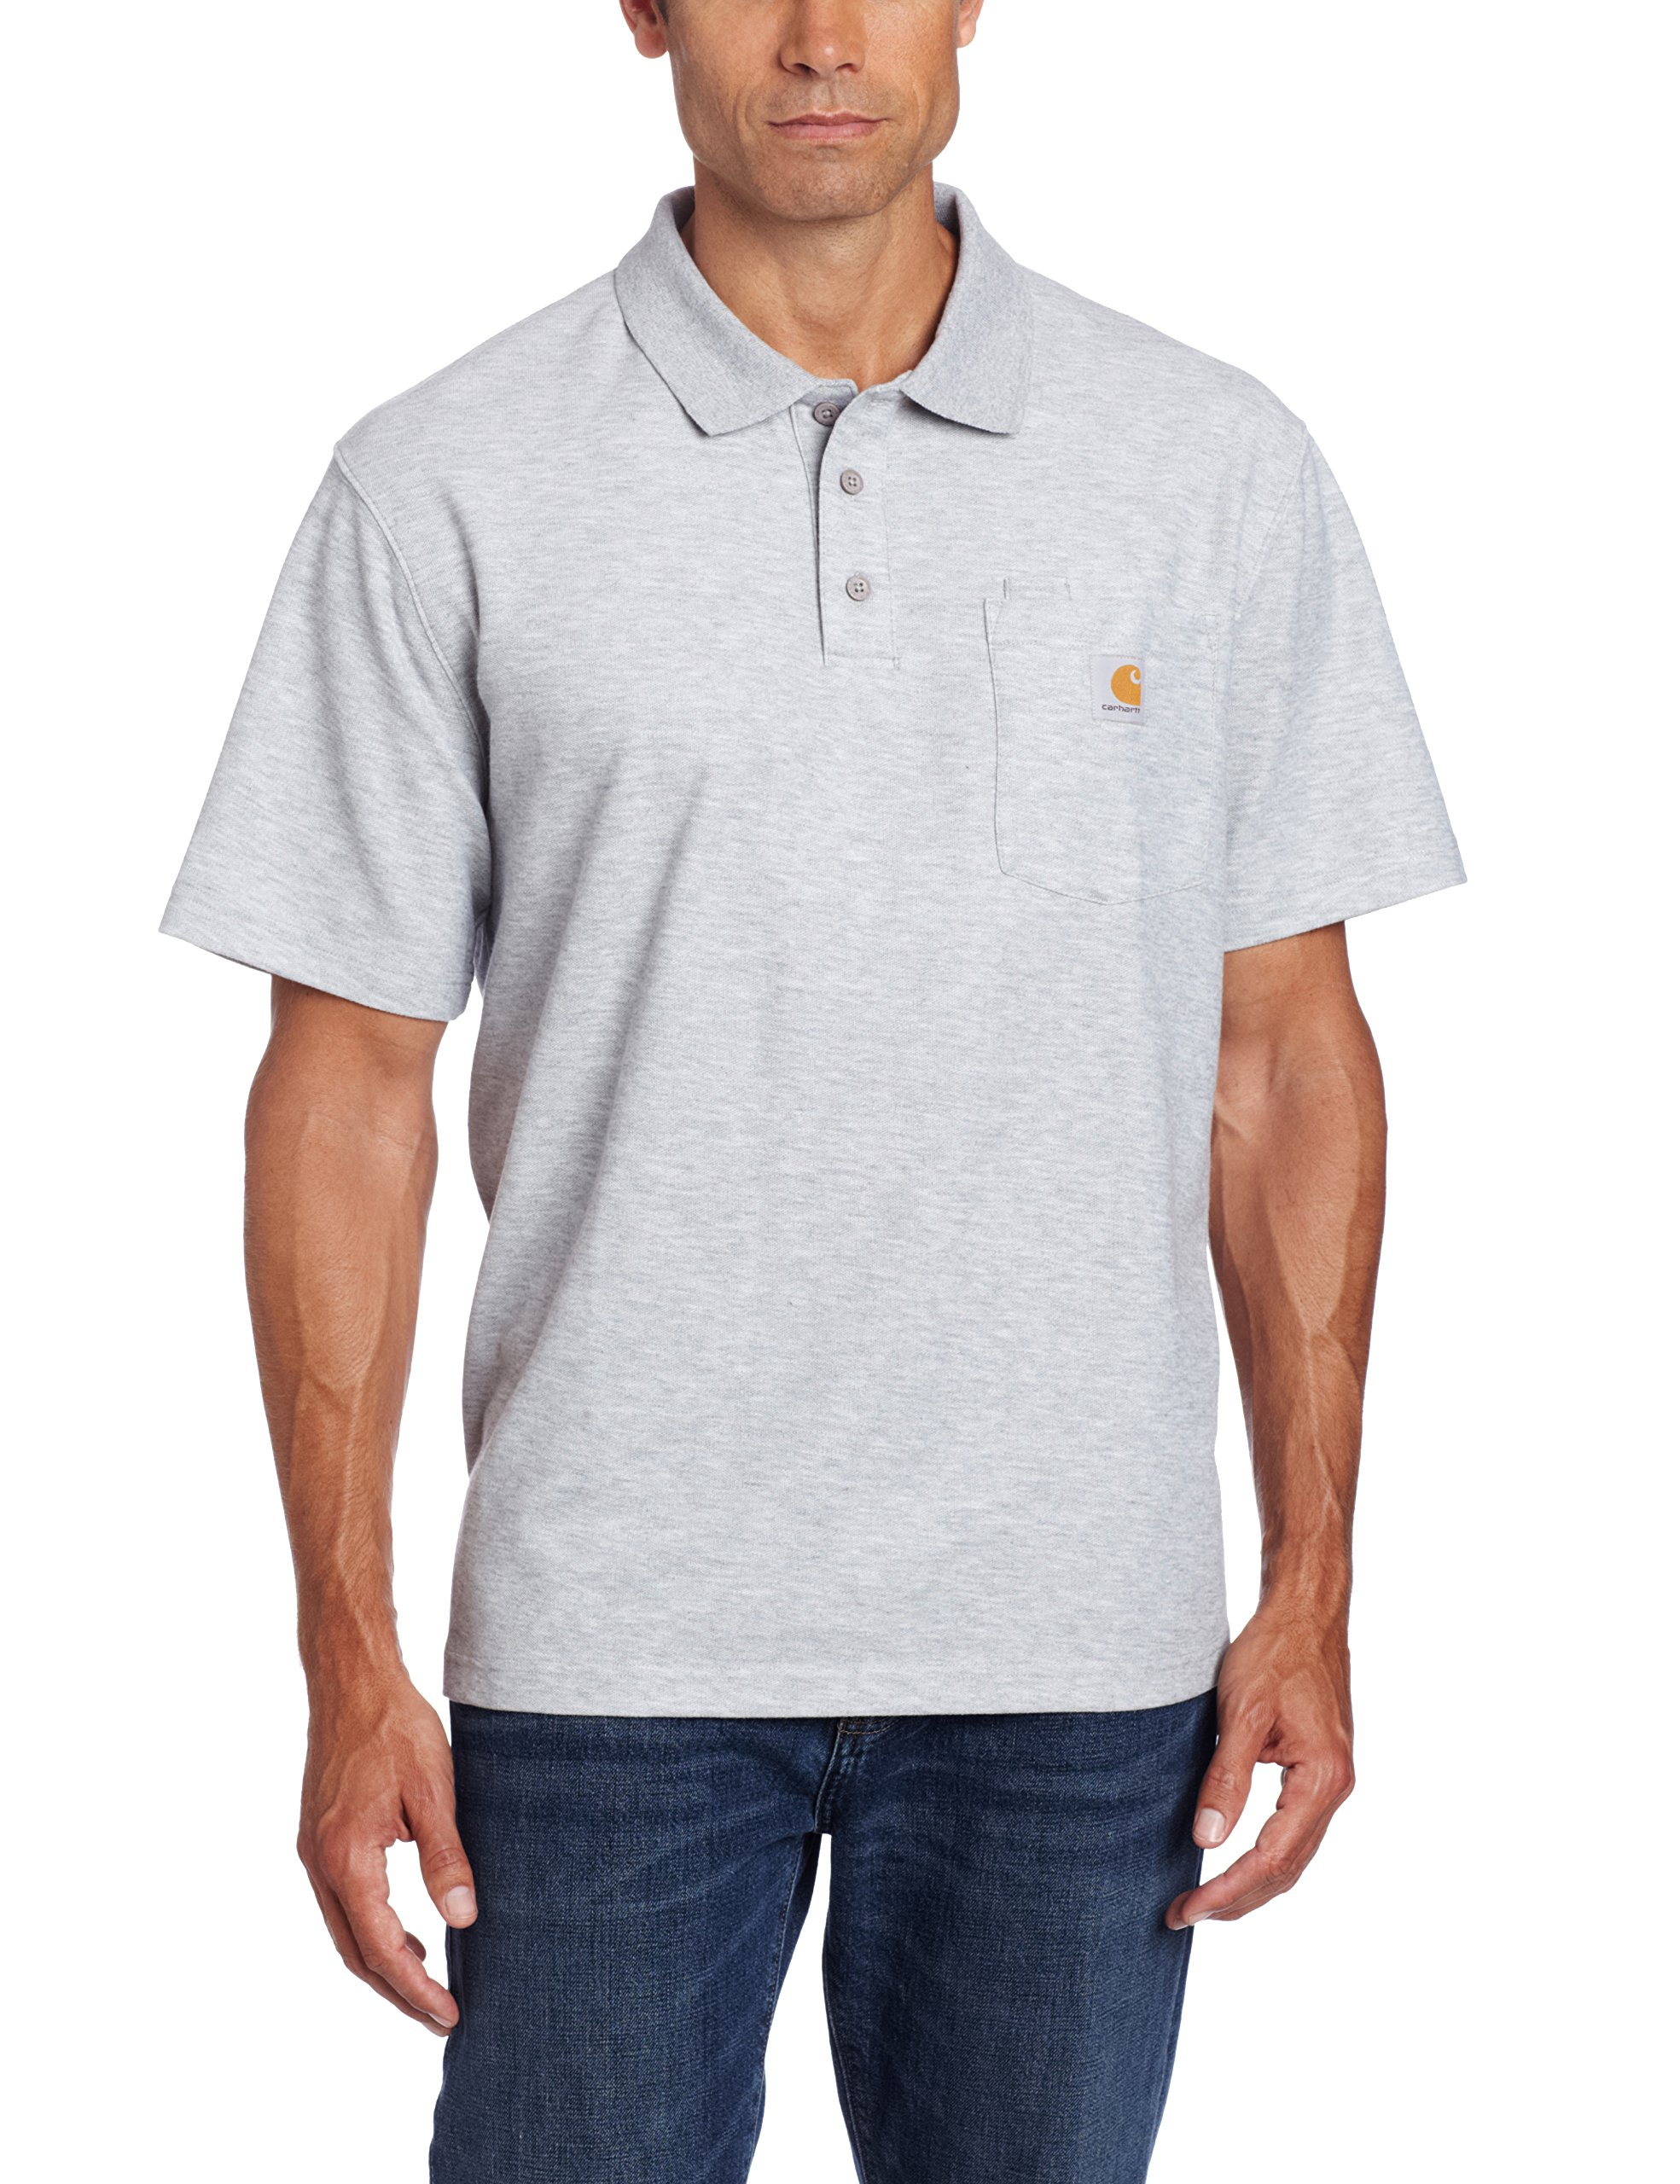 40746bb70552 Best Rated in Men s Polo Shirts   Helpful Customer Reviews - Amazon.com